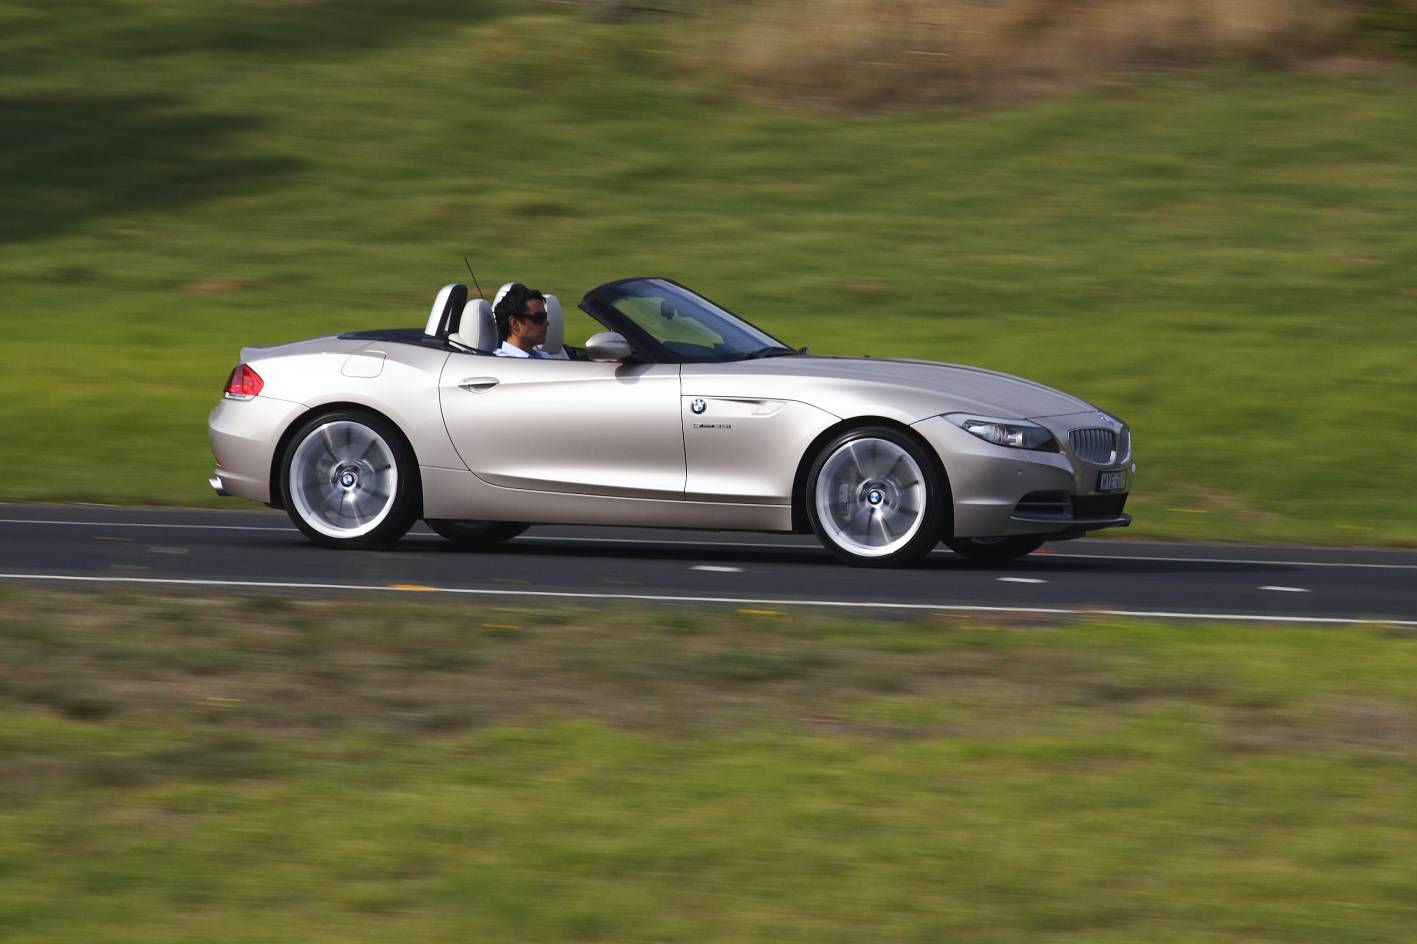 Bmw Z4 Review Amp Road Test Photos 1 Of 14